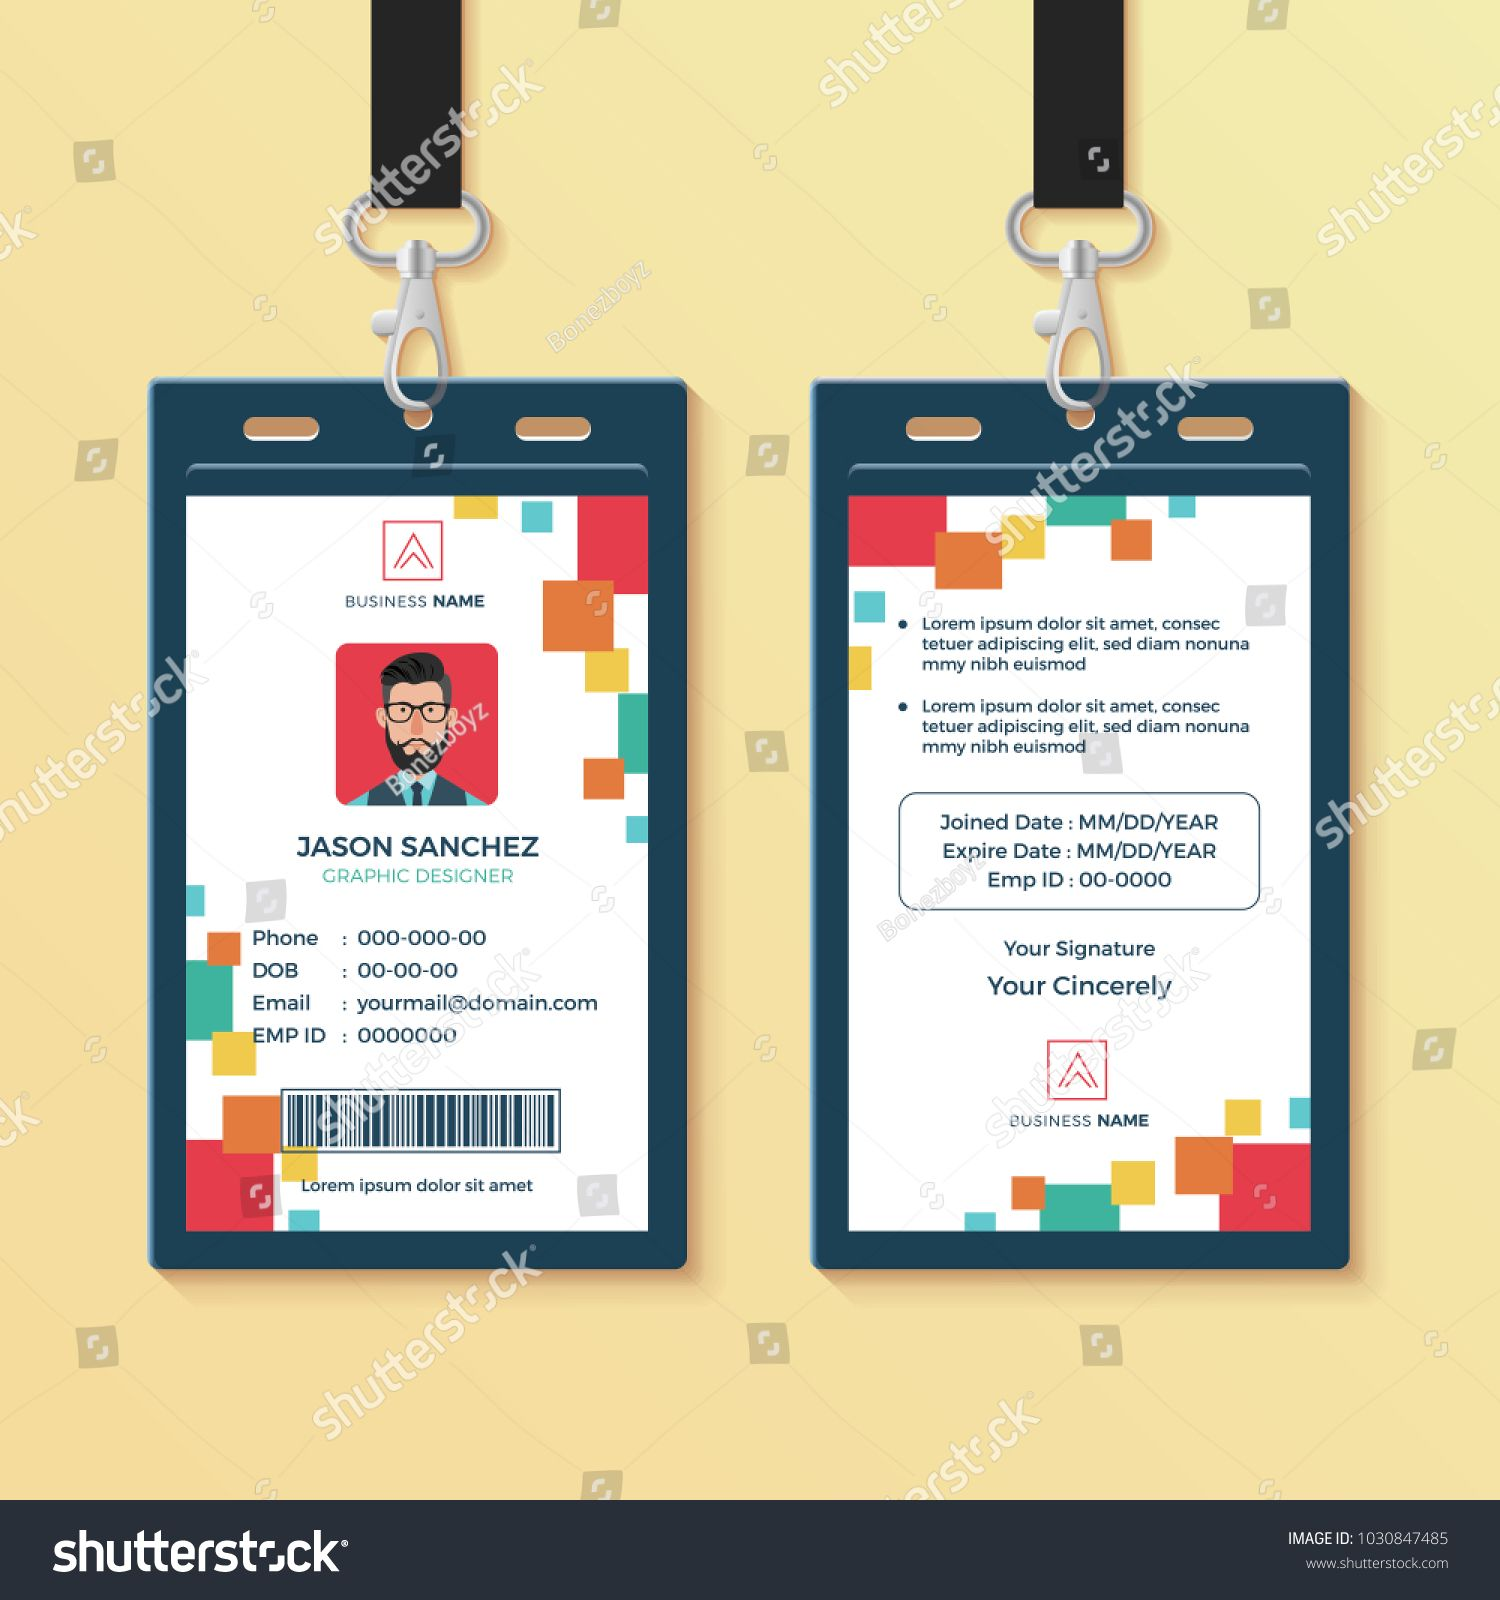 Creative Id Card Template Perfect For Any Types Of Agency